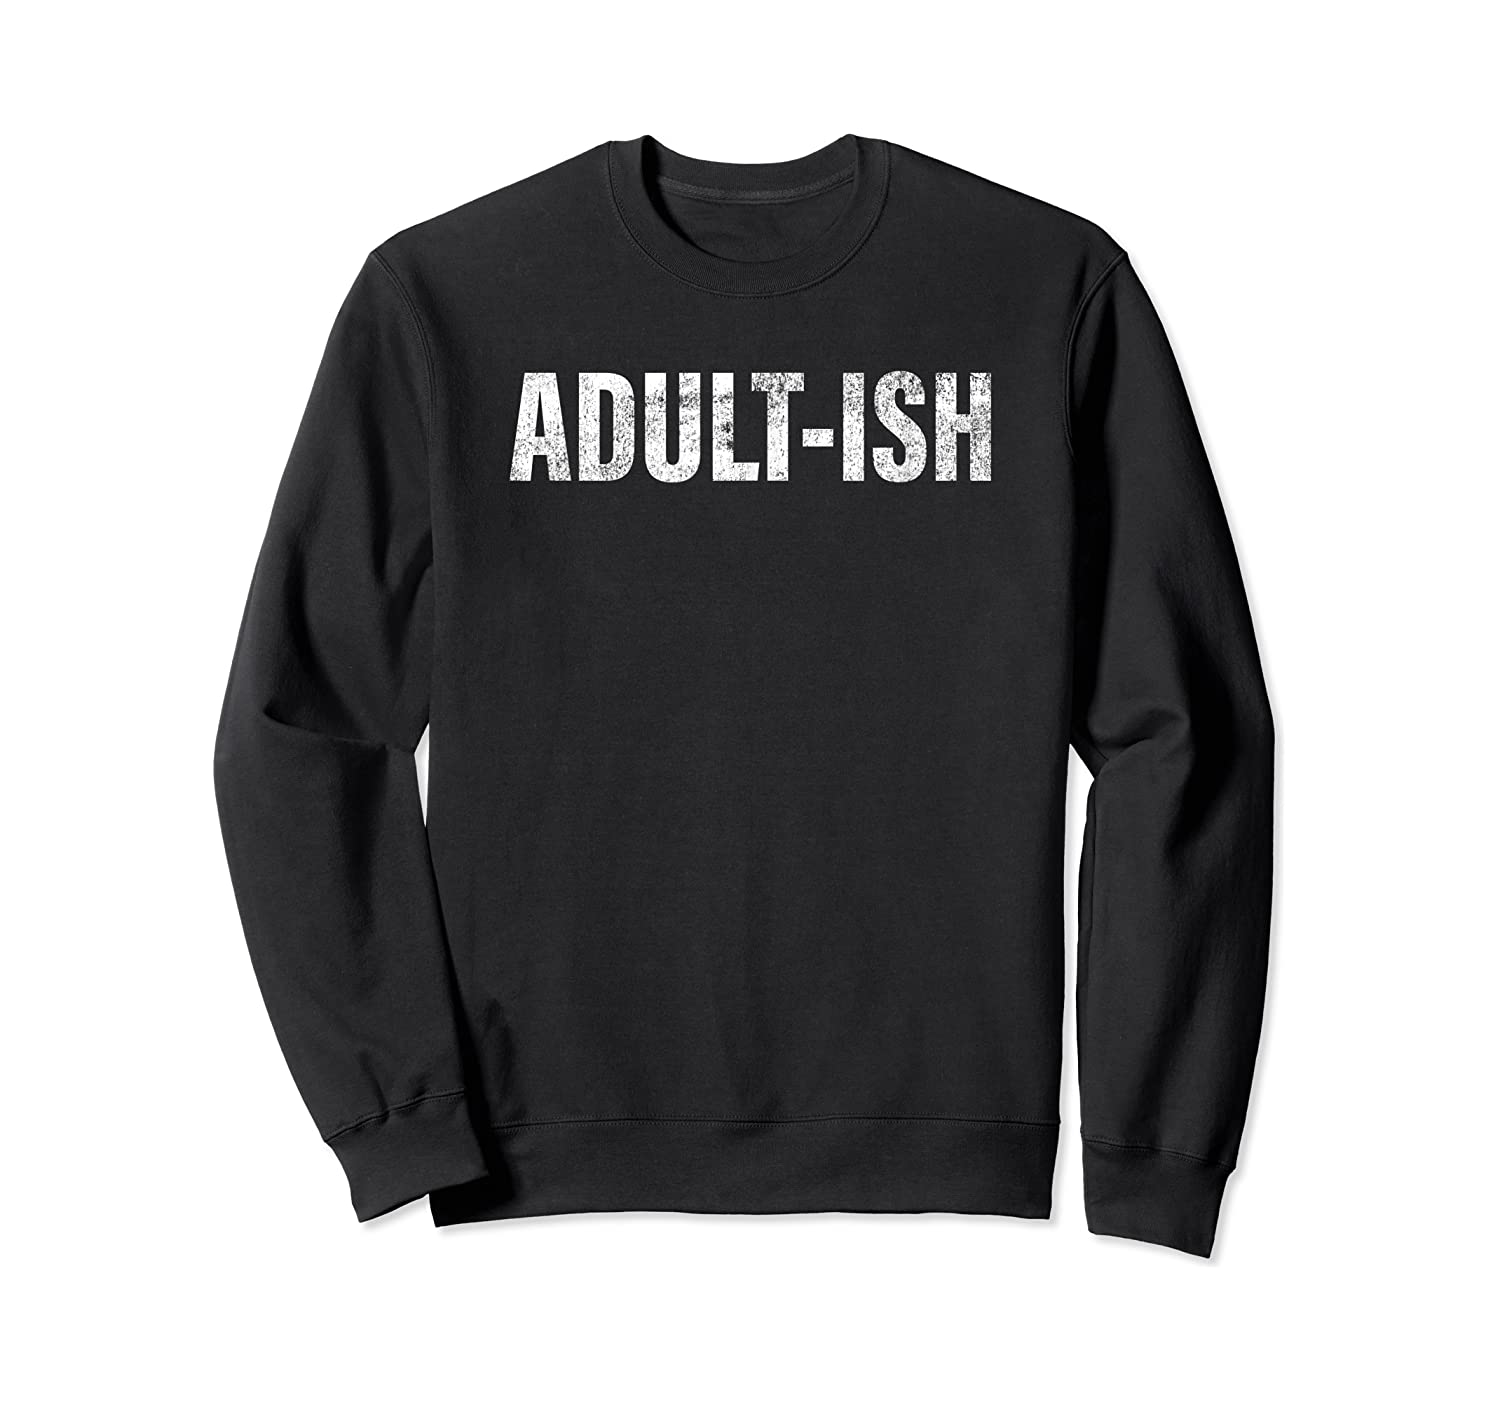 Adult Ish Funny Adulting 18 Years Old Birthday Shirts Crewneck Sweater